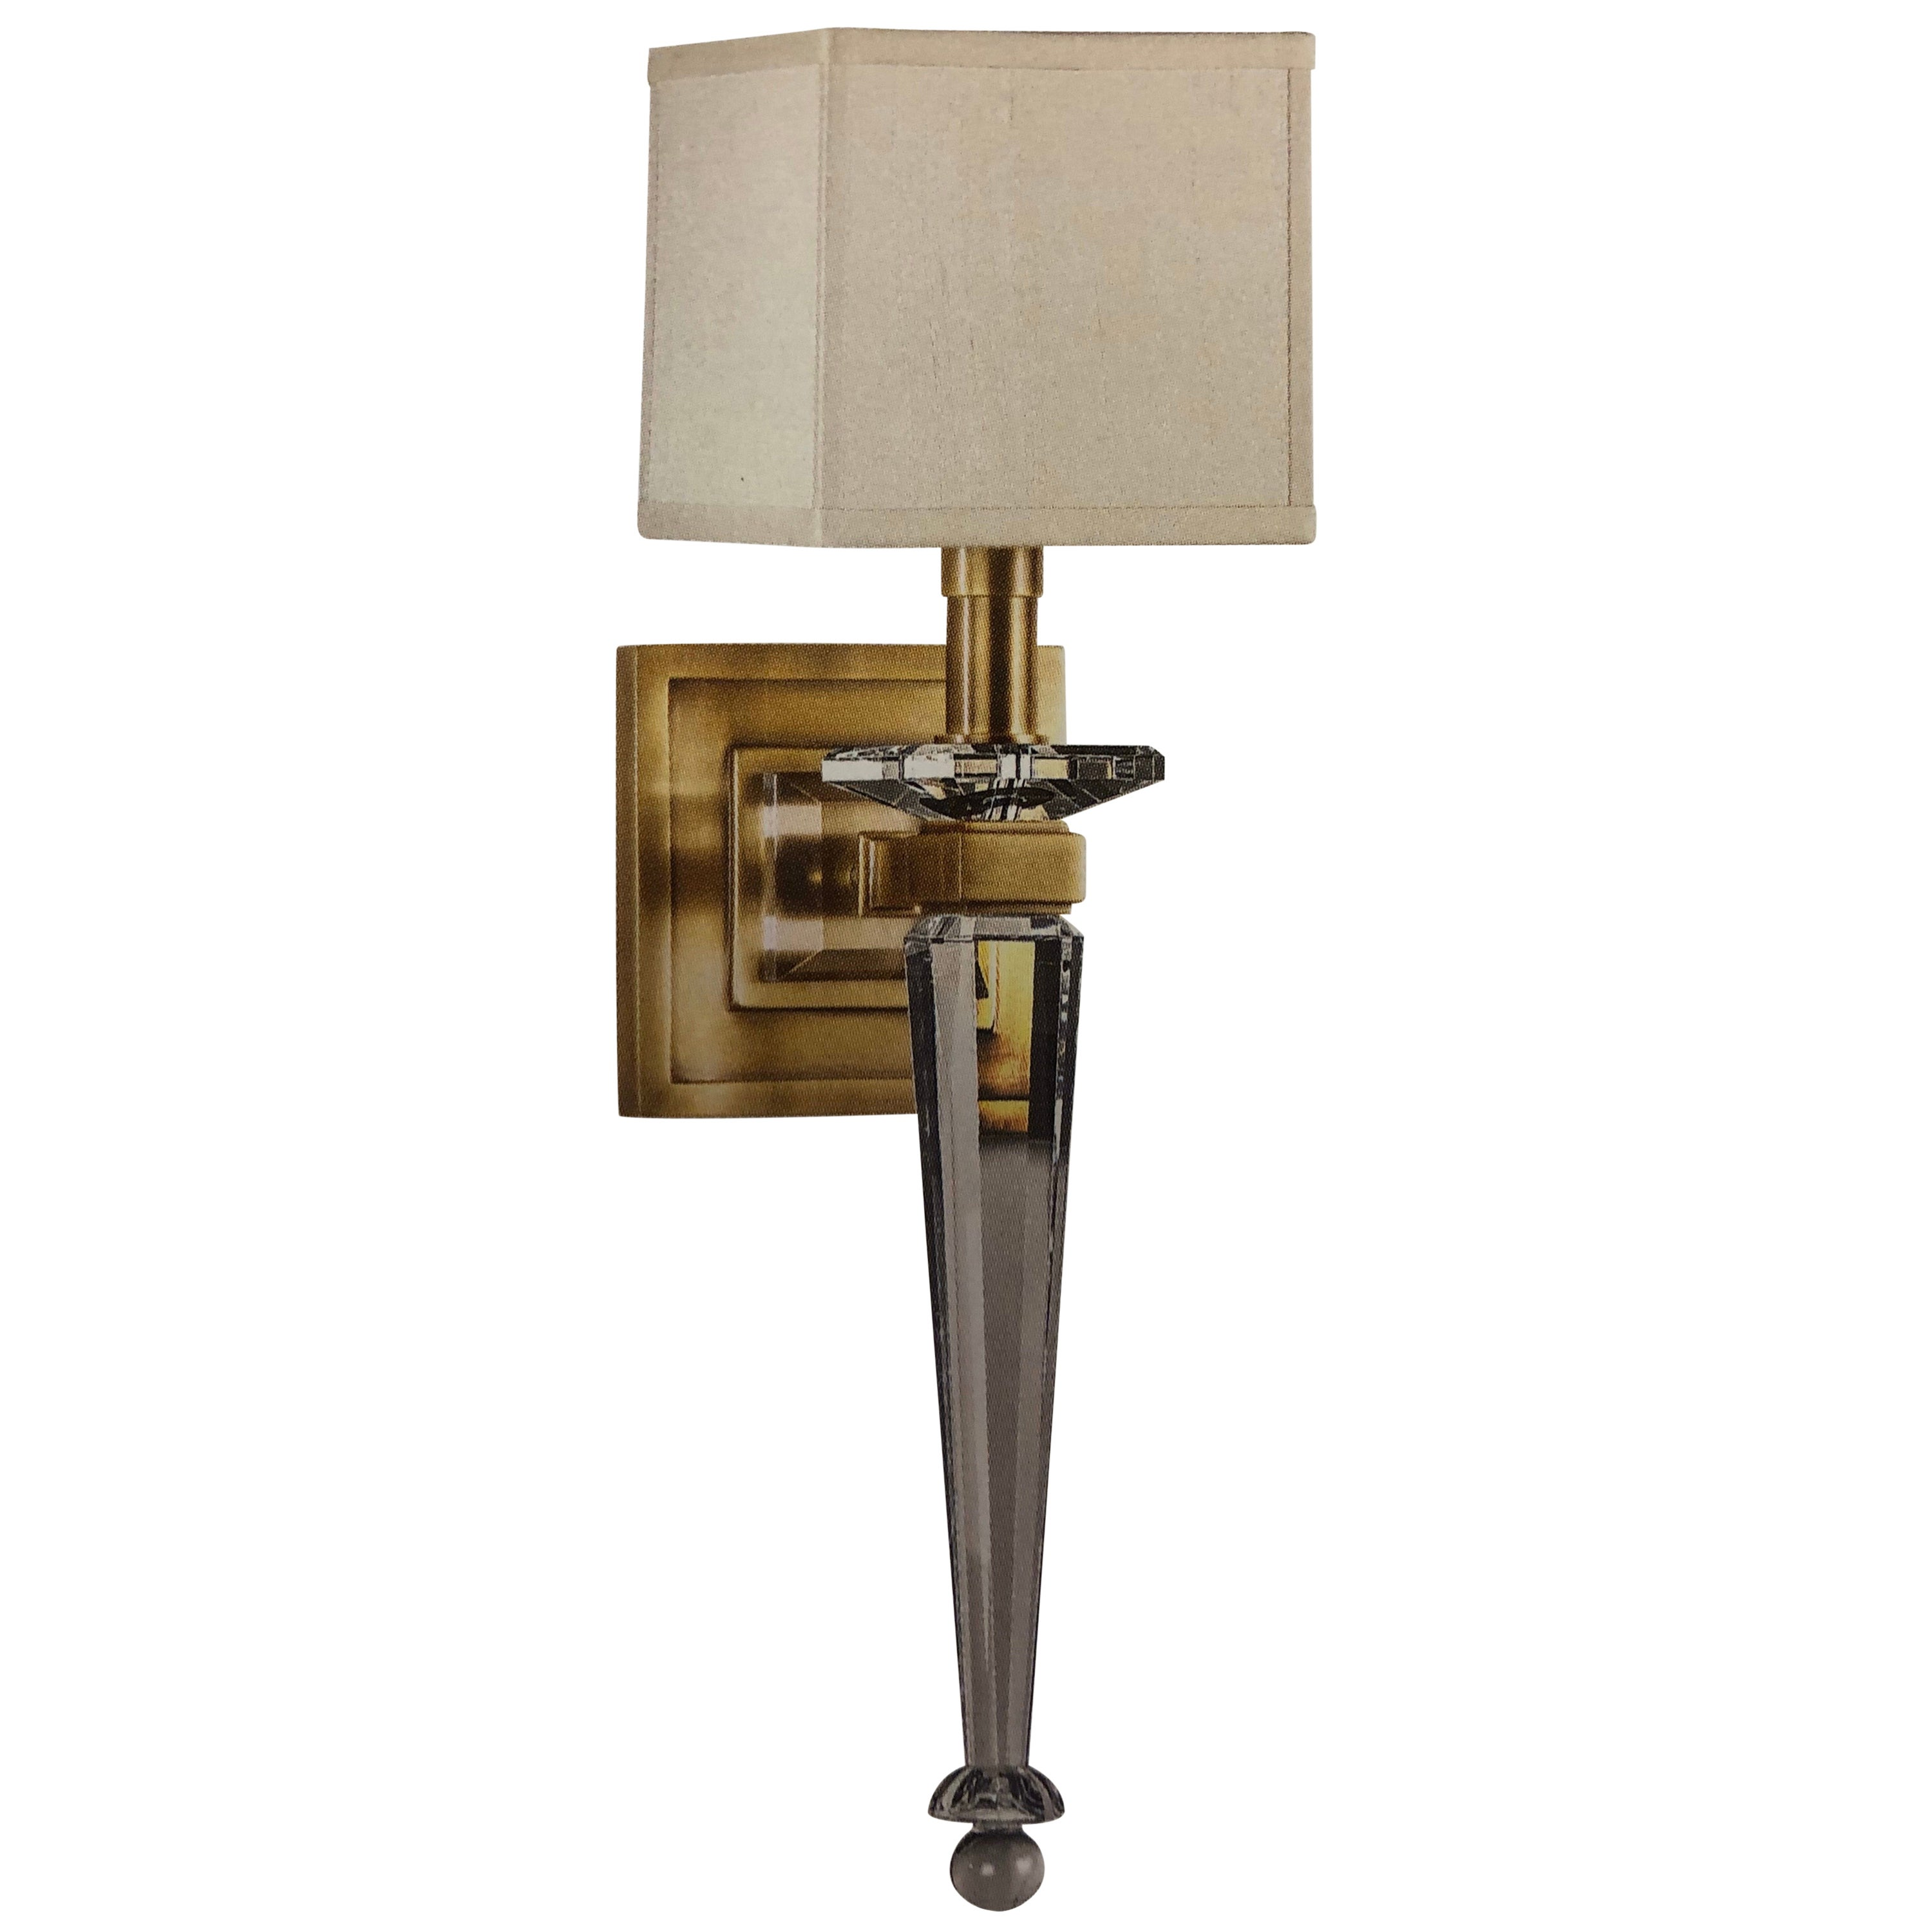 2 Pairs Modern Neoclassical Brass and Crystal Wall Sconces, Andre Arbus style